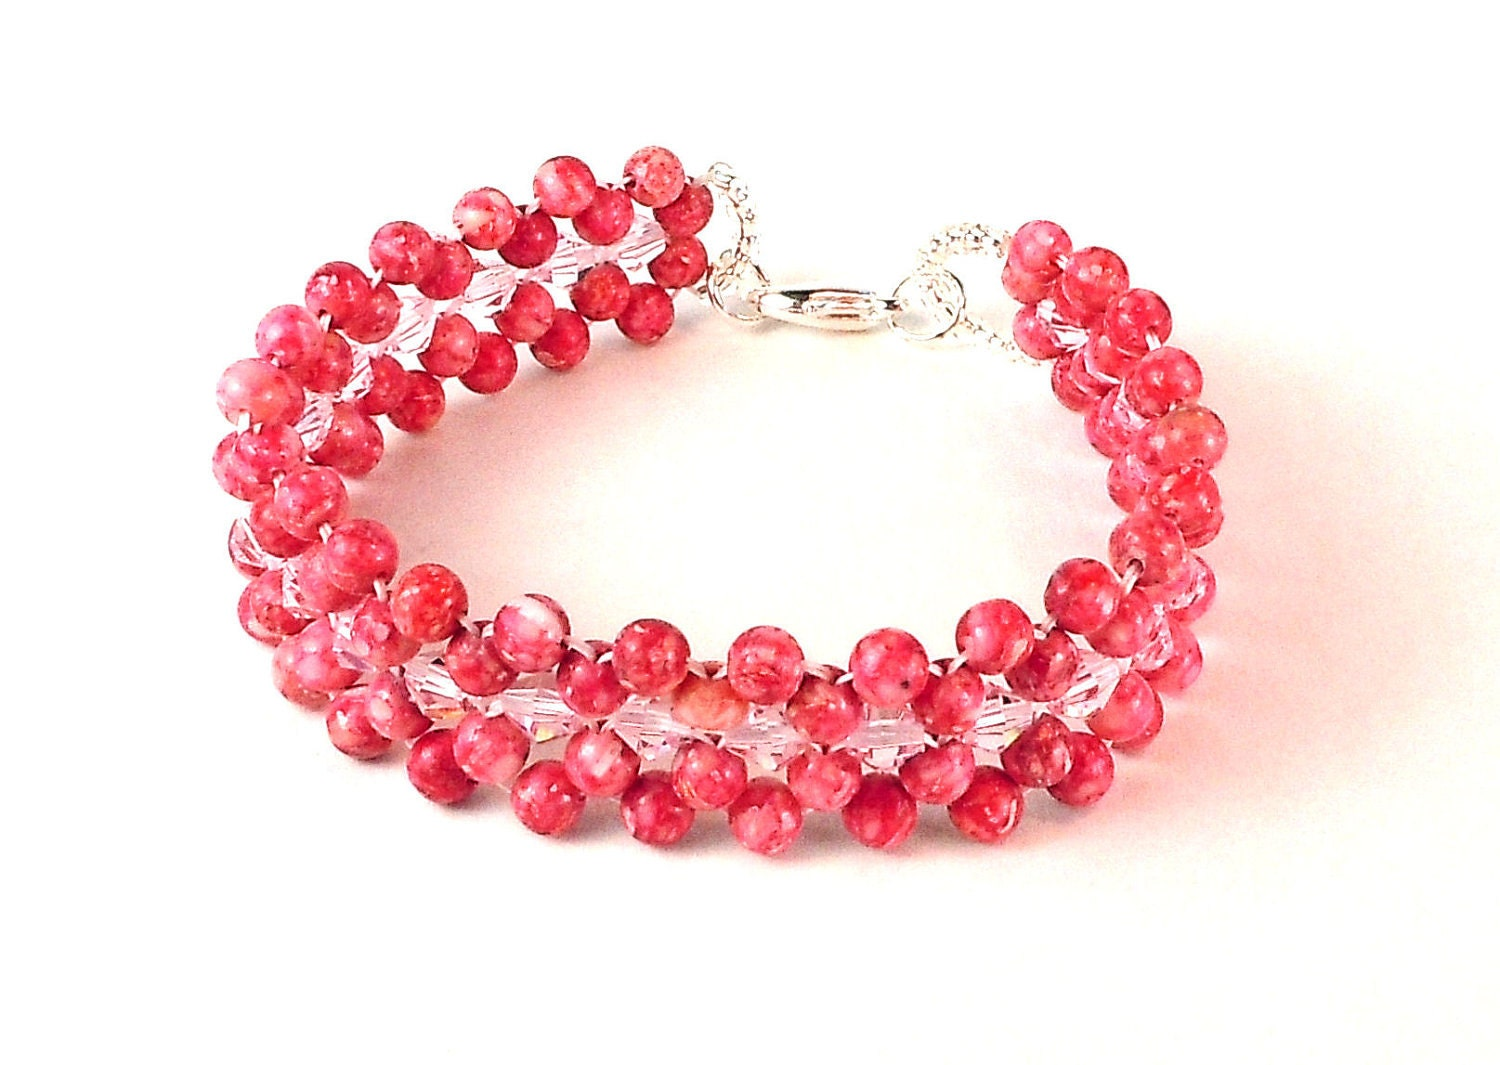 Pink Crystal and Resin Right Angle Weave Bracelet with a Lobster Claw Clasp - BeadingDerby